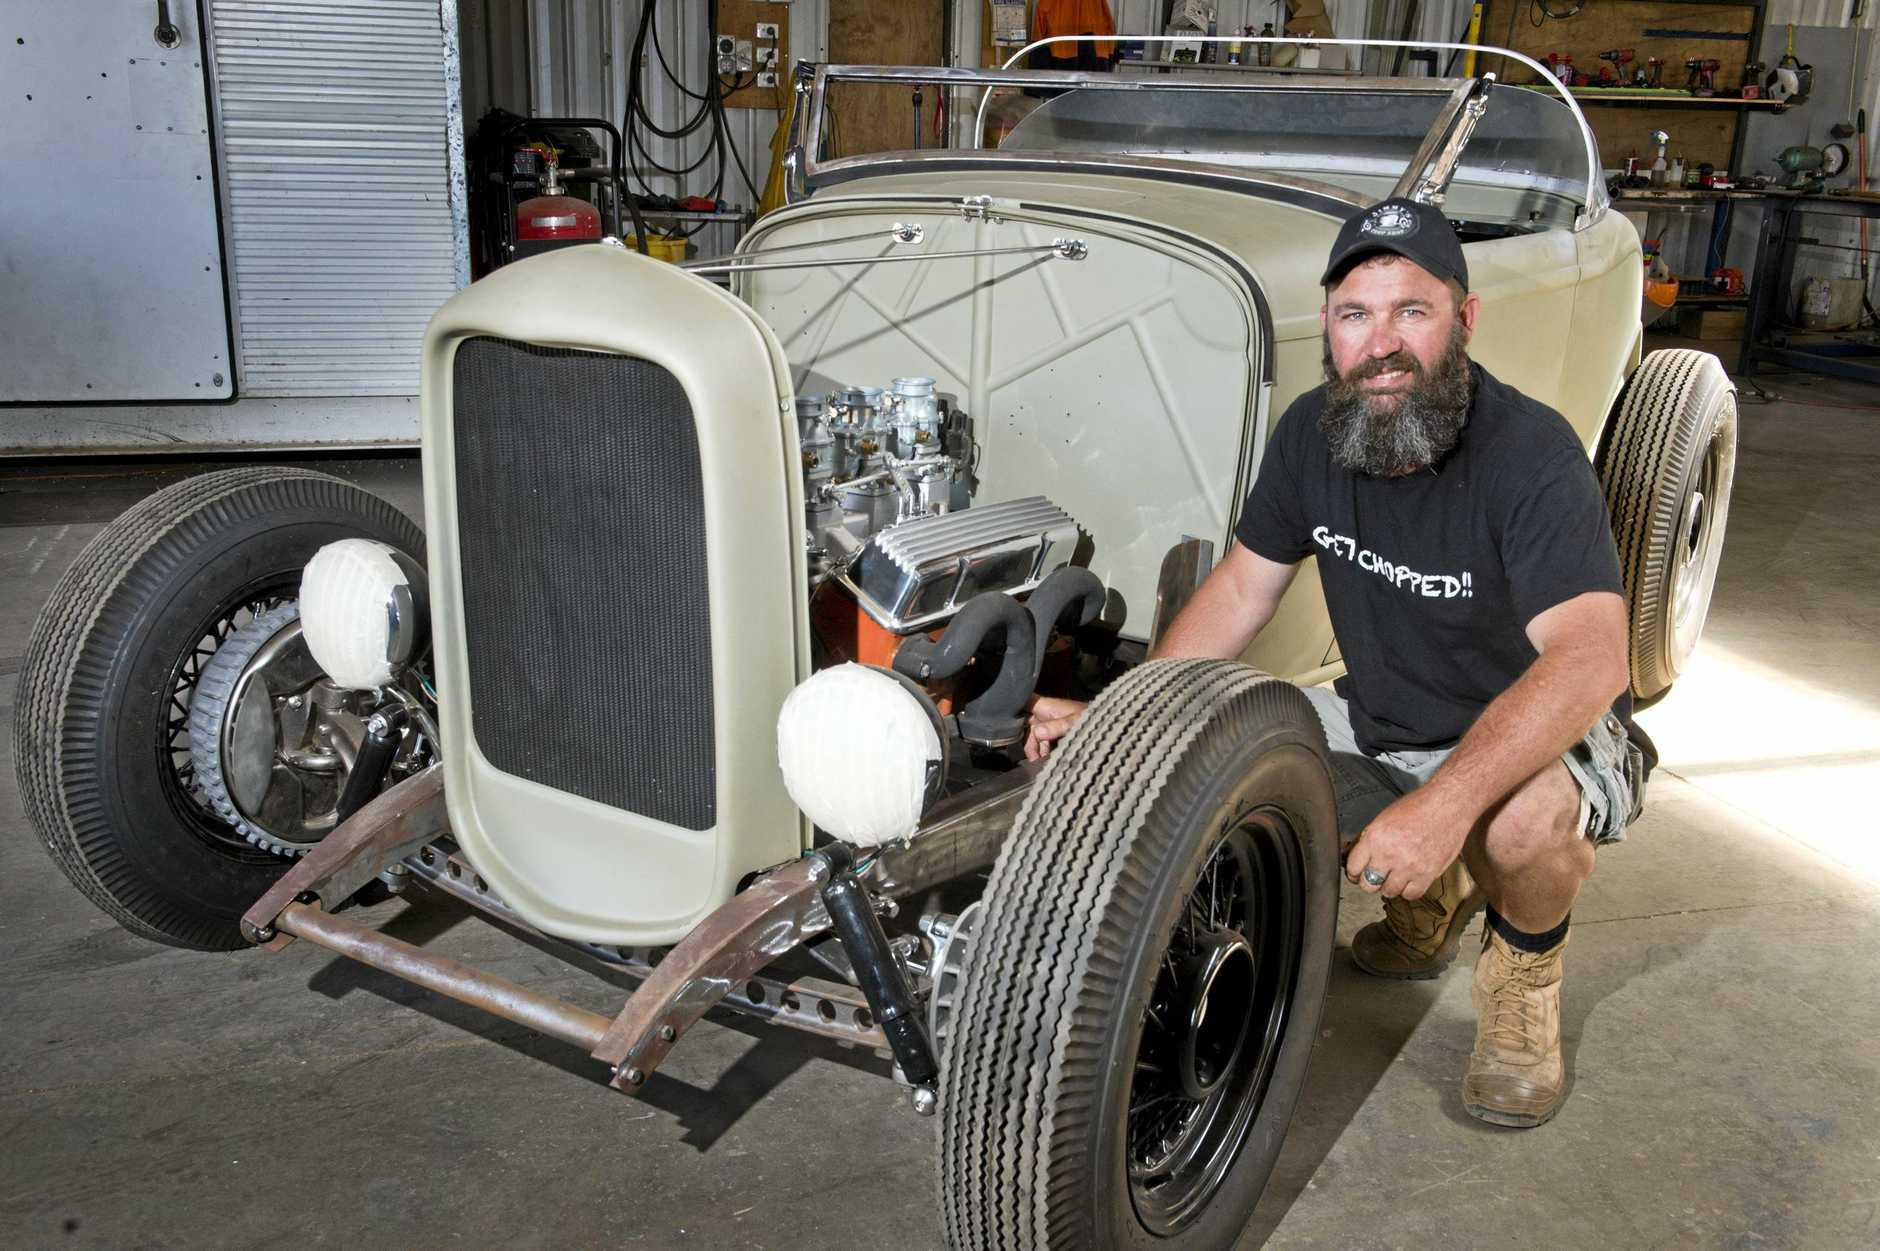 HOT ROD: Darren Cardiff, Director of Jimmy's Chop Shop, will be entering this year's competition with his newly restored car.